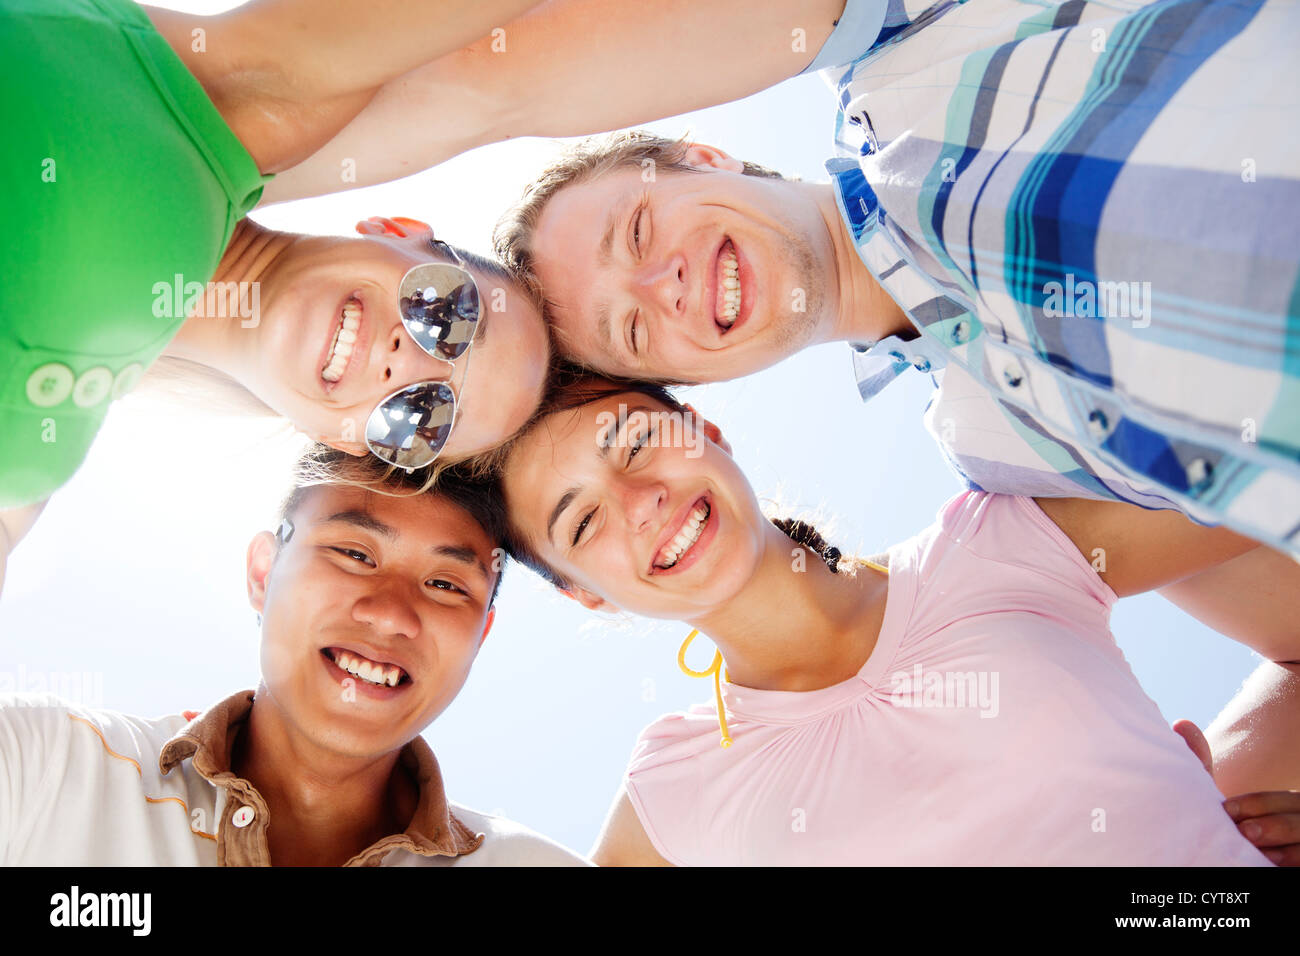 group of young people having fun - Stock Image